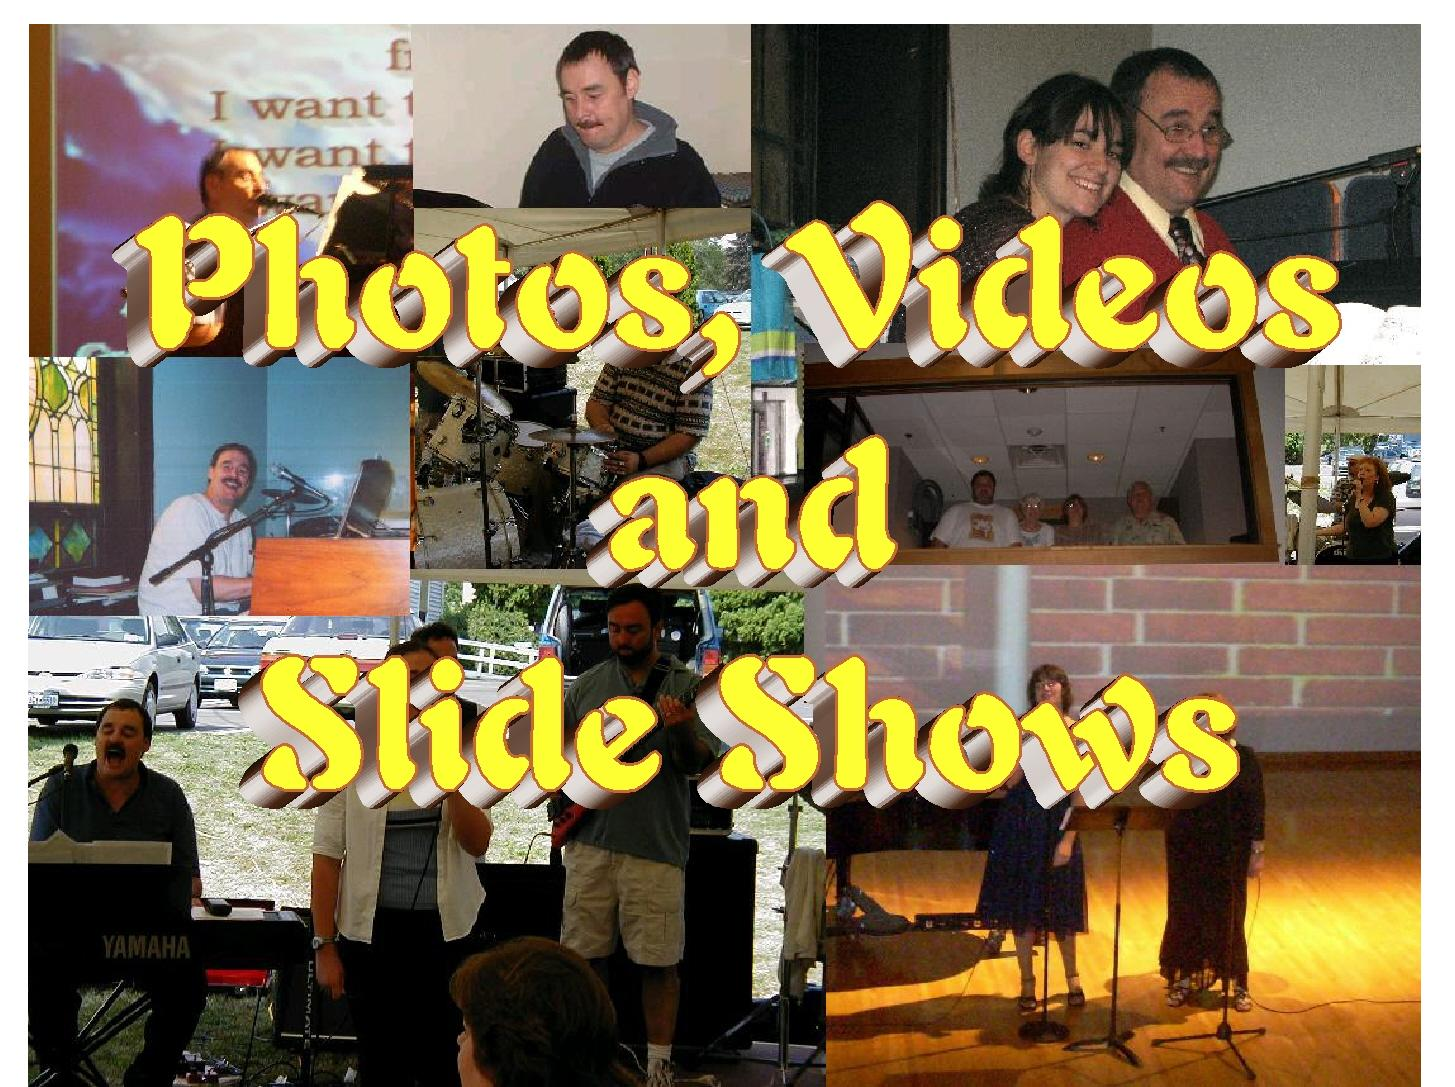 Photos, videos and xlide shows